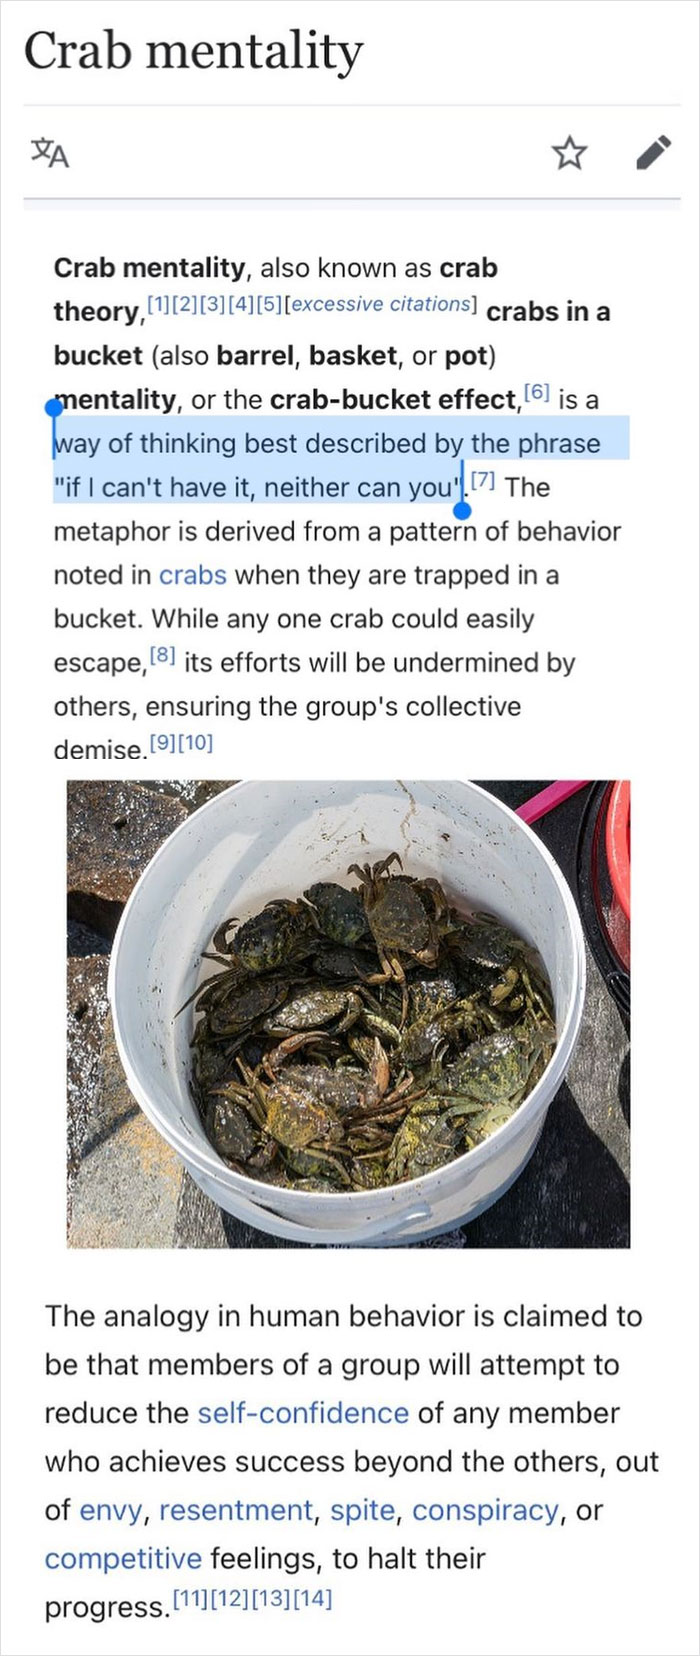 Just Like Crabs In A Bucket Block The Escape Attempts Of Other Crabs, People In A Group May Attempt To Sabotage The The Most Talented Group Member Out Of Envy And Spite